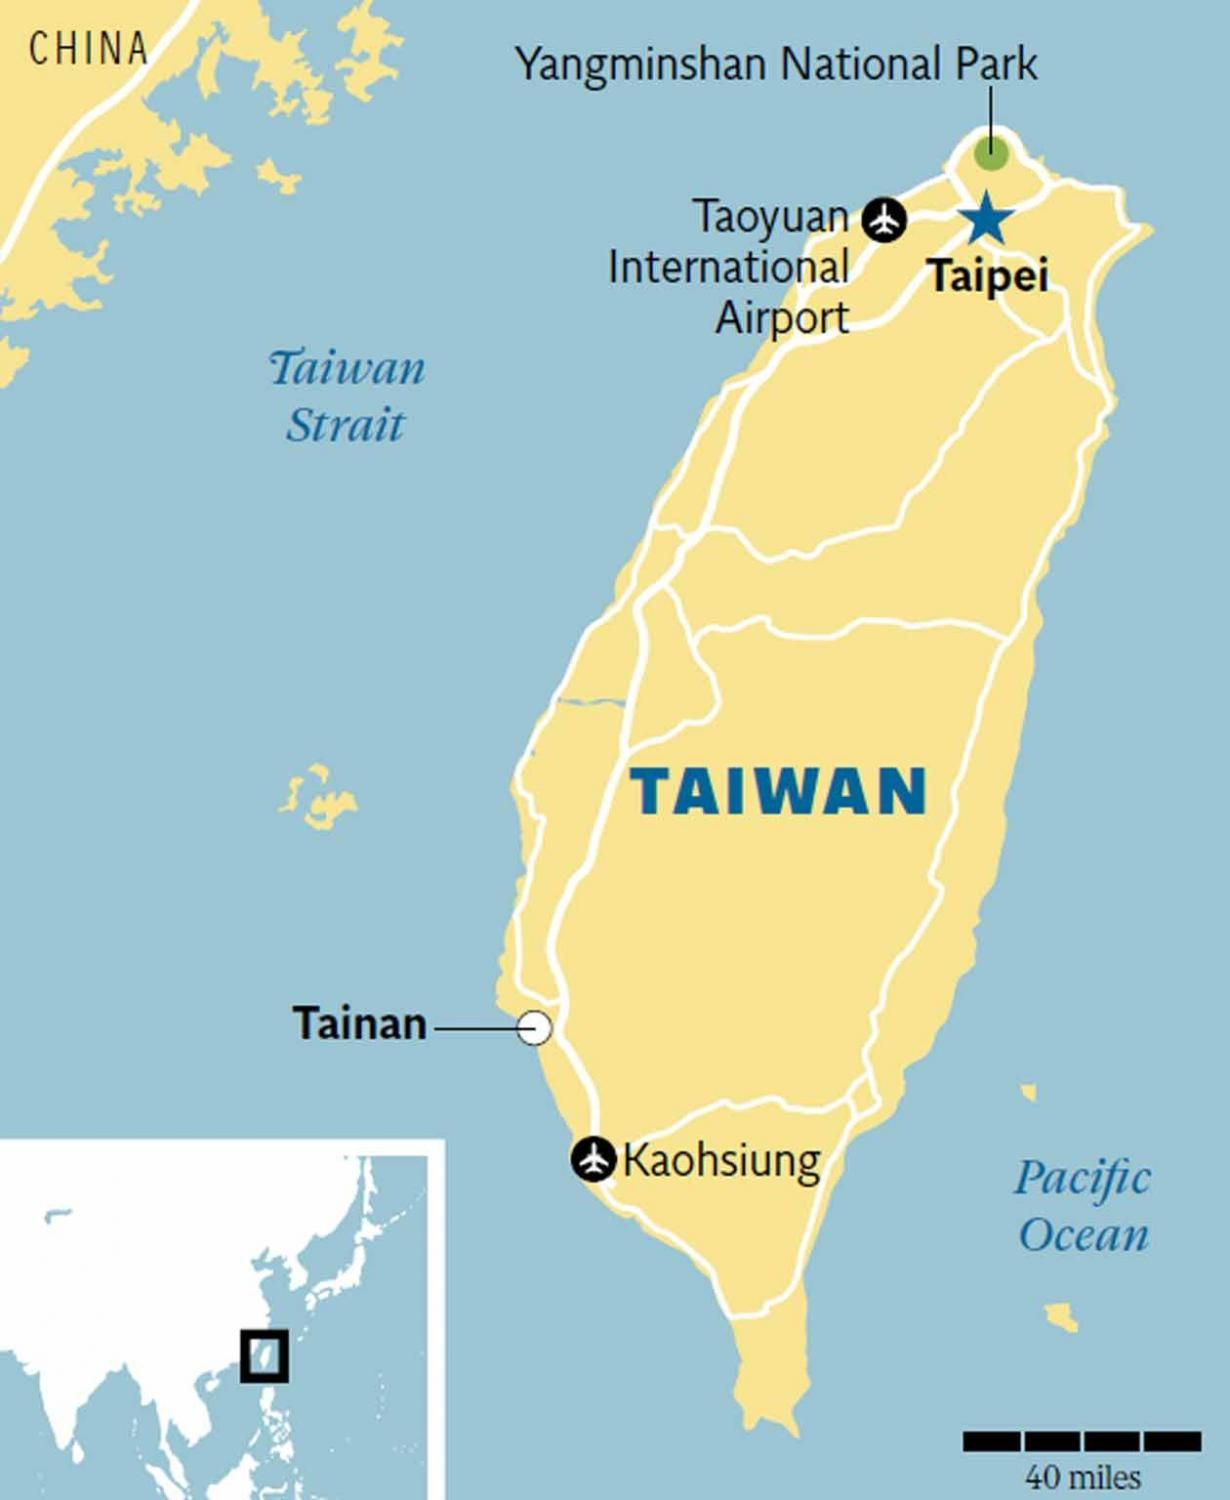 Taiwan S Tale Of Two Cities Taipei And Tainan Tainan Taipei Taiwan